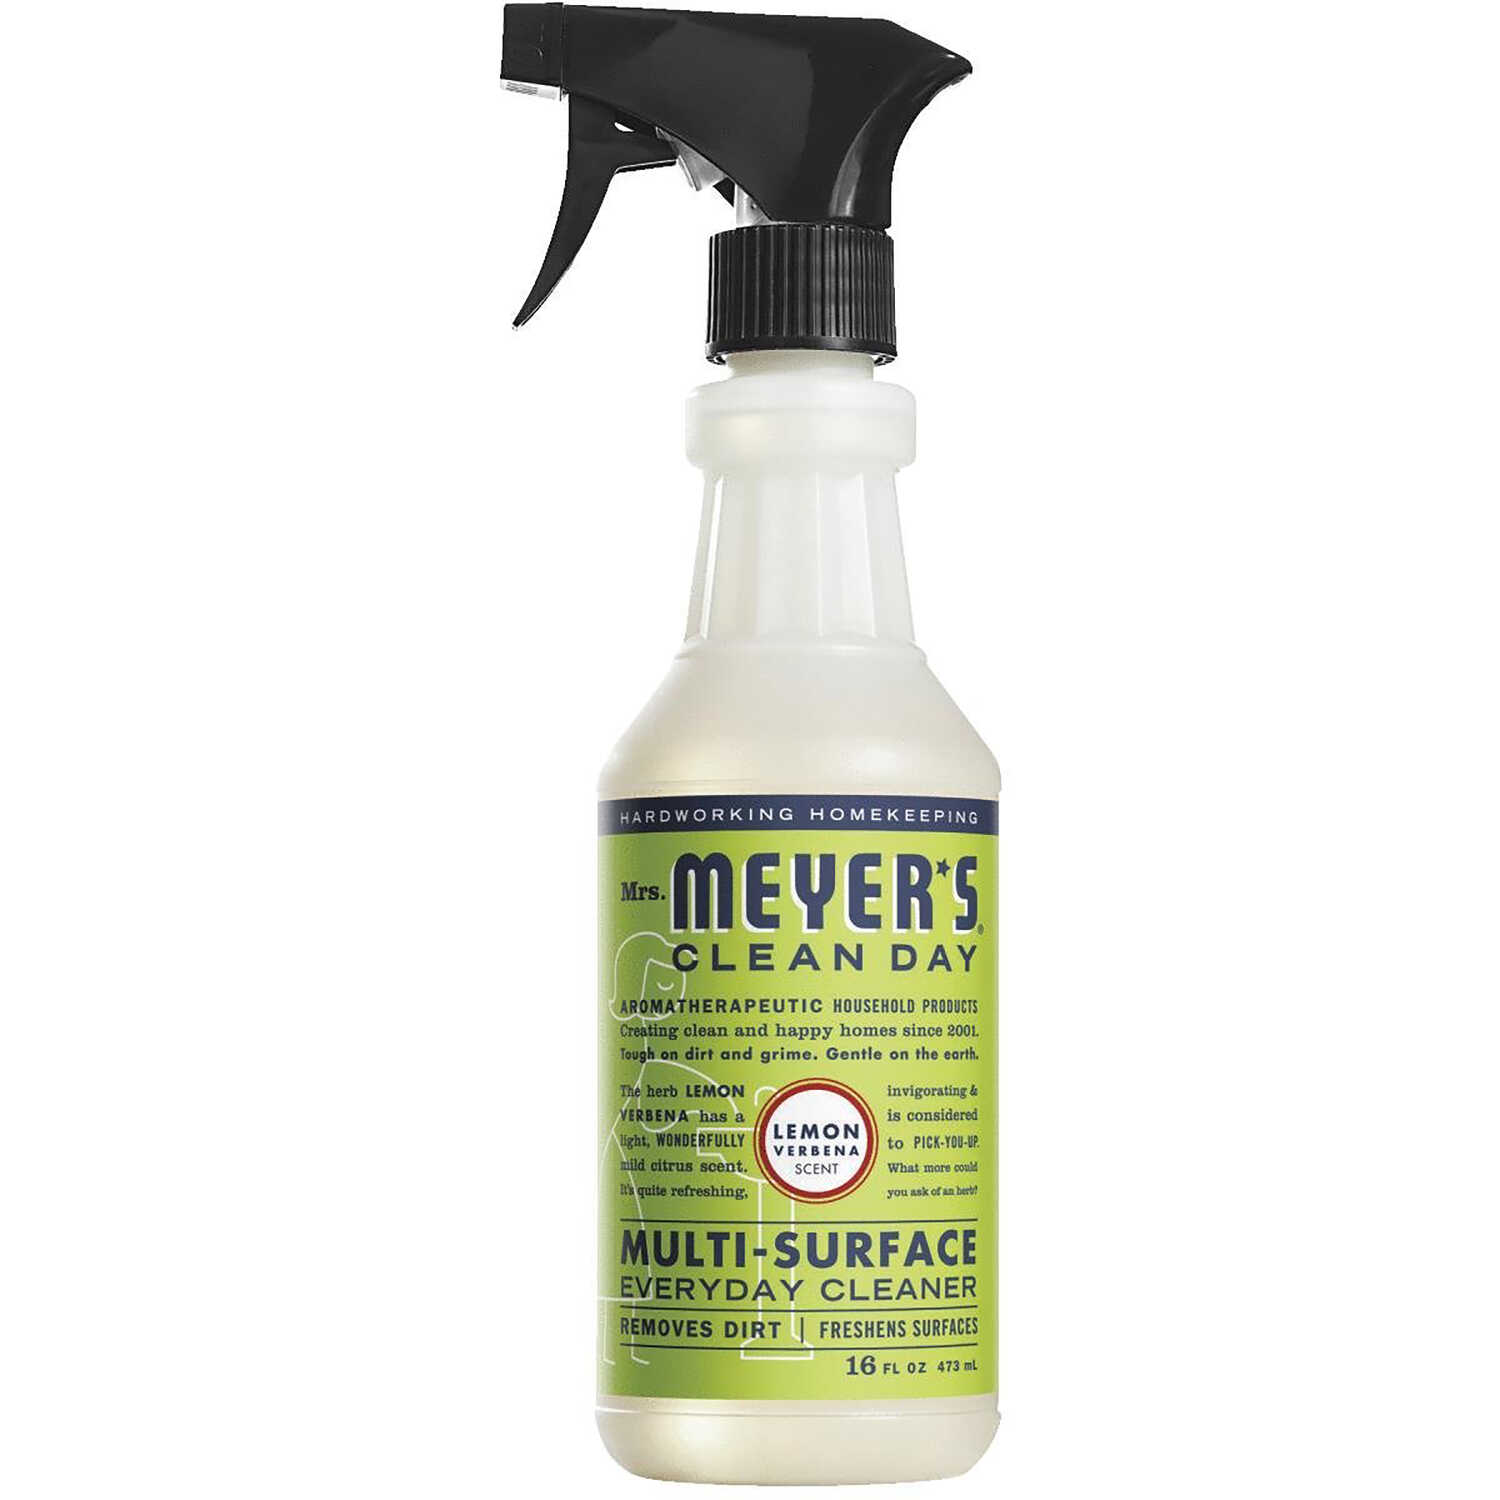 Mrs. Meyer's  Clean Day  Lemon Verbena Scent Organic Multi-Surface Cleaner, Protector and Deodorizer